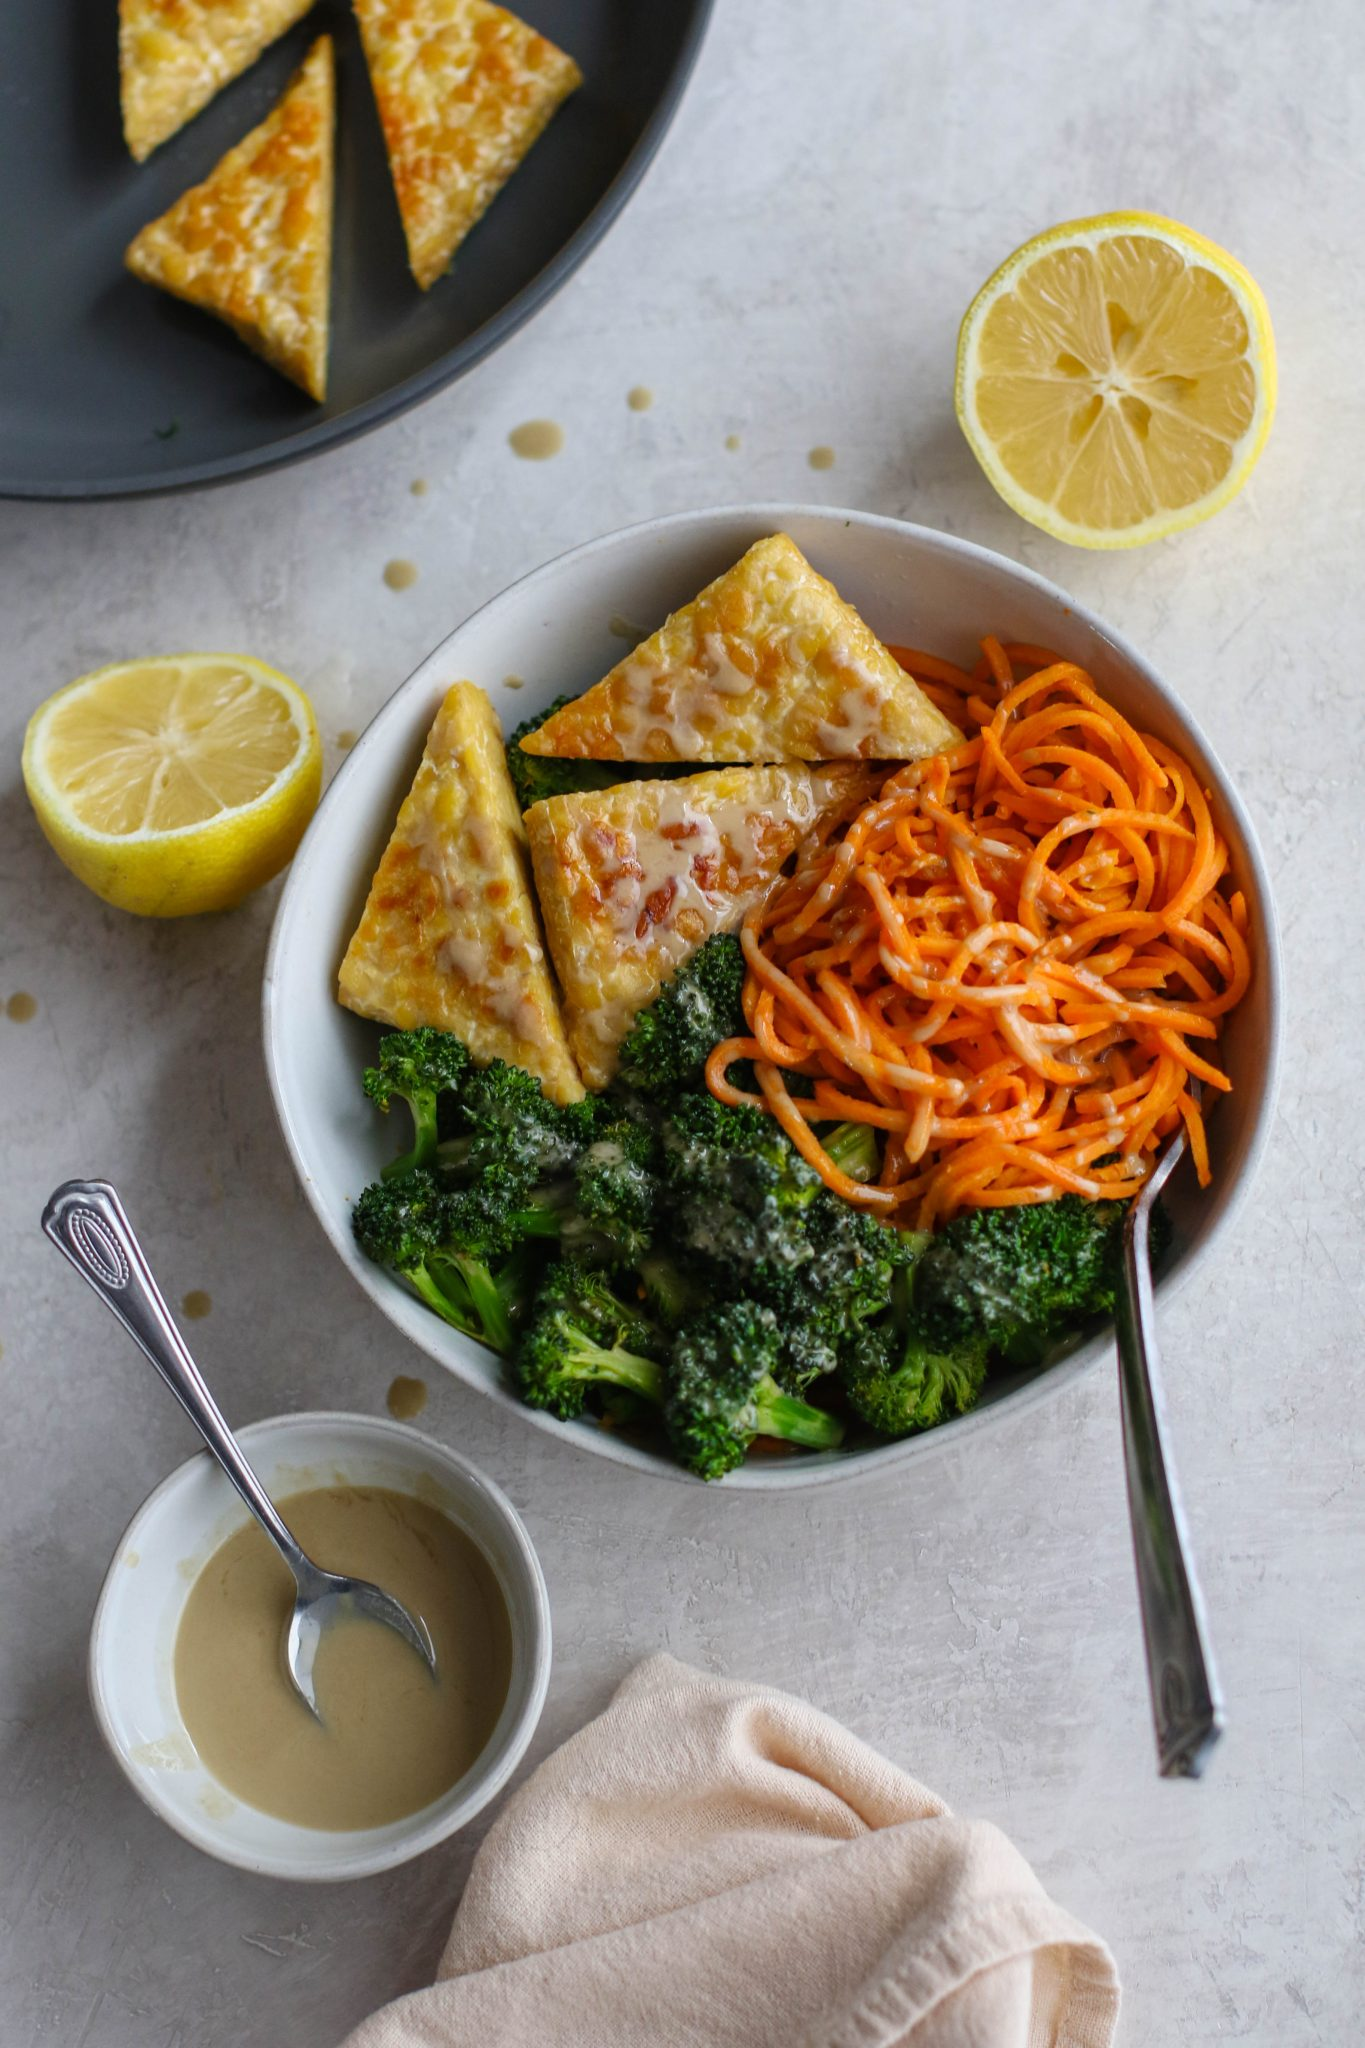 Tahini Tempeh, Sweet Potato Noodle, & Broccoli Bowl by Flora & Vino